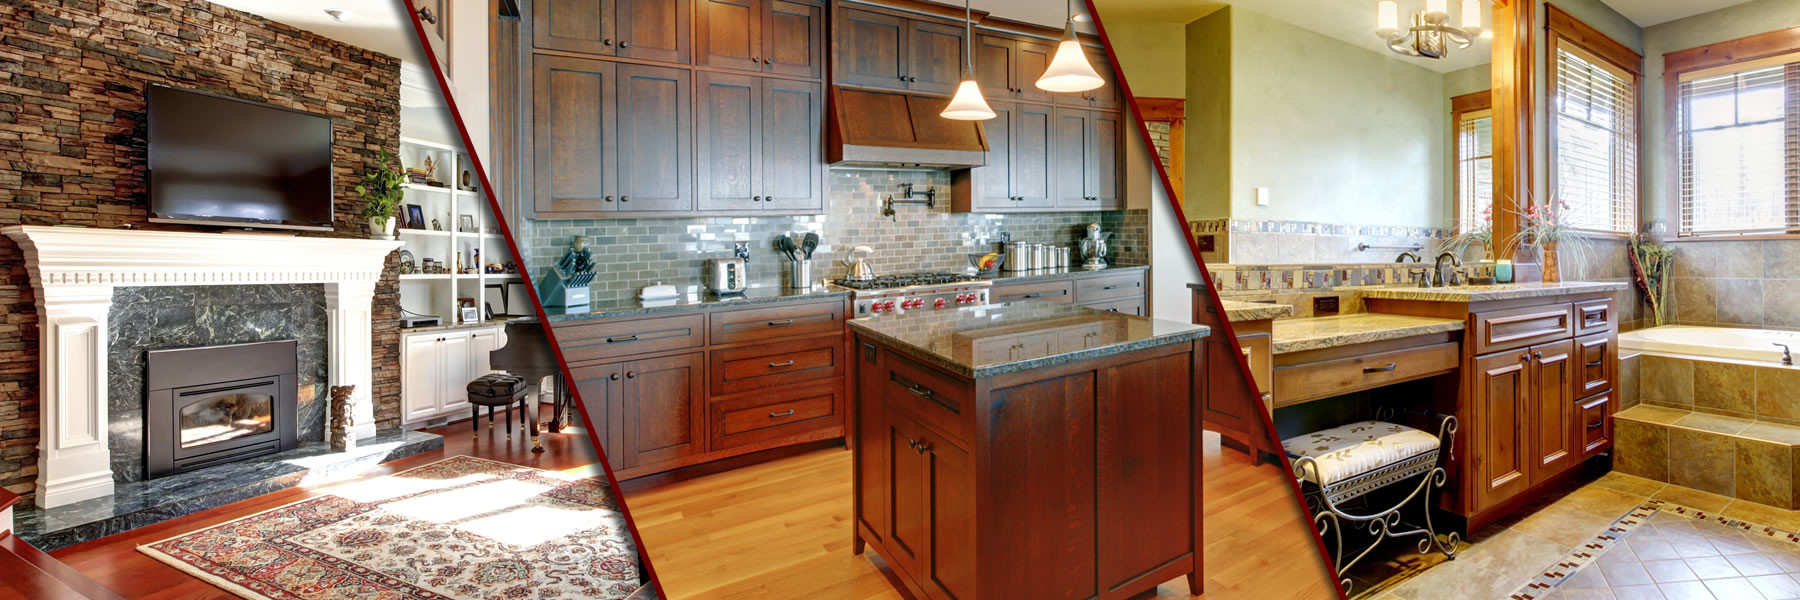 Importance Of Kitchen And Bathroom Remodeling And Doing It On A Budget In Northern Virginia